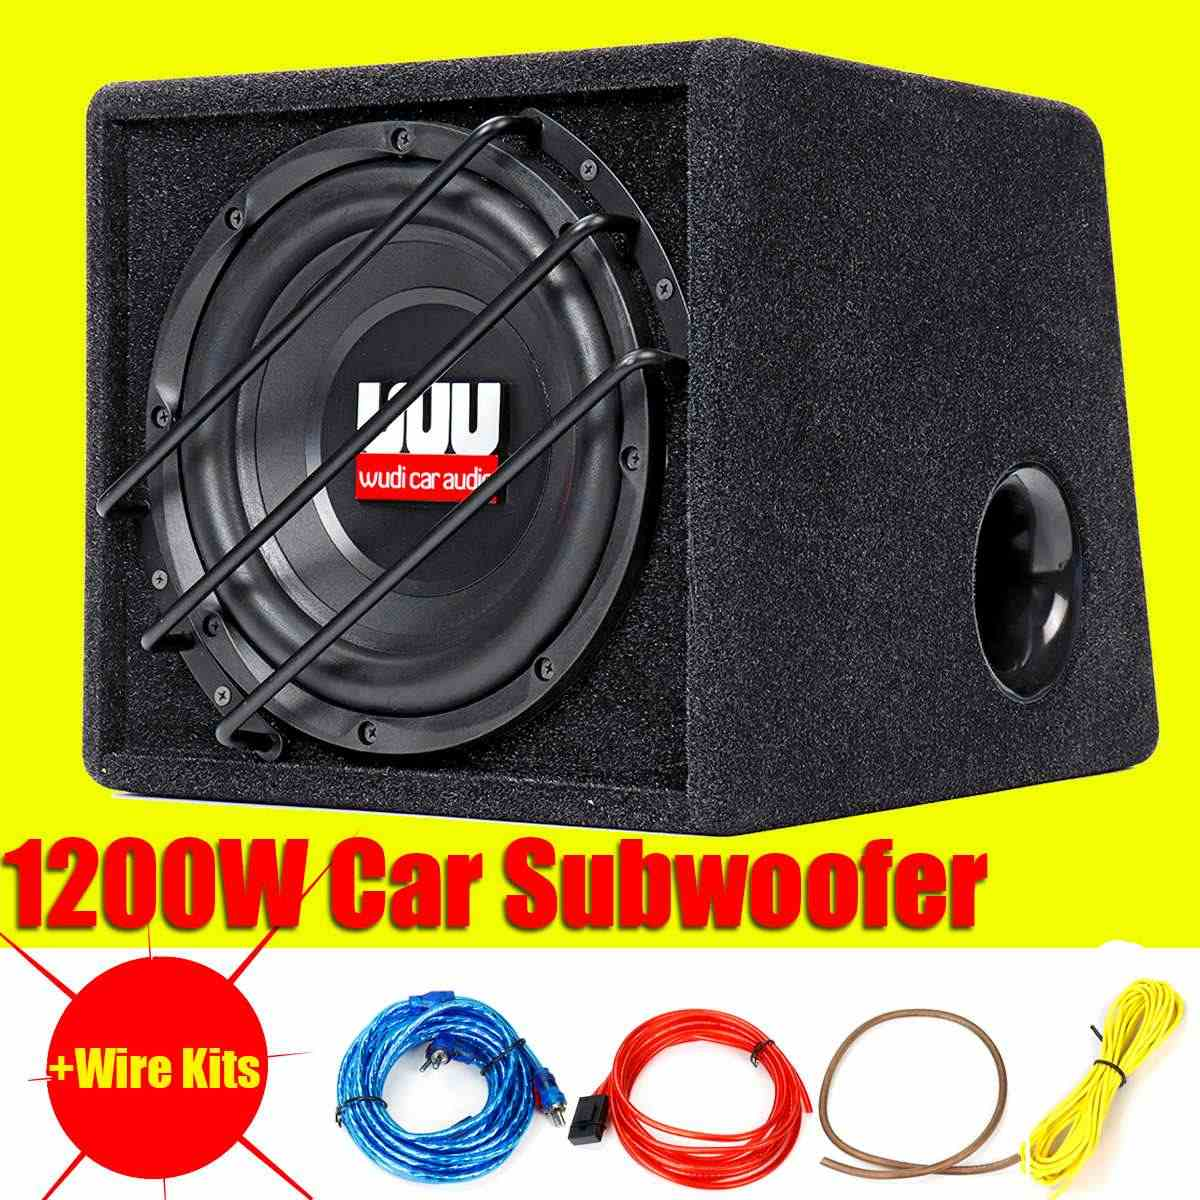 10 inch 1200w car subwoofer Strong Subwoofer Auto Super Bass Car Audio Speaker active Woofer Built-in Amplifer Car Speaker